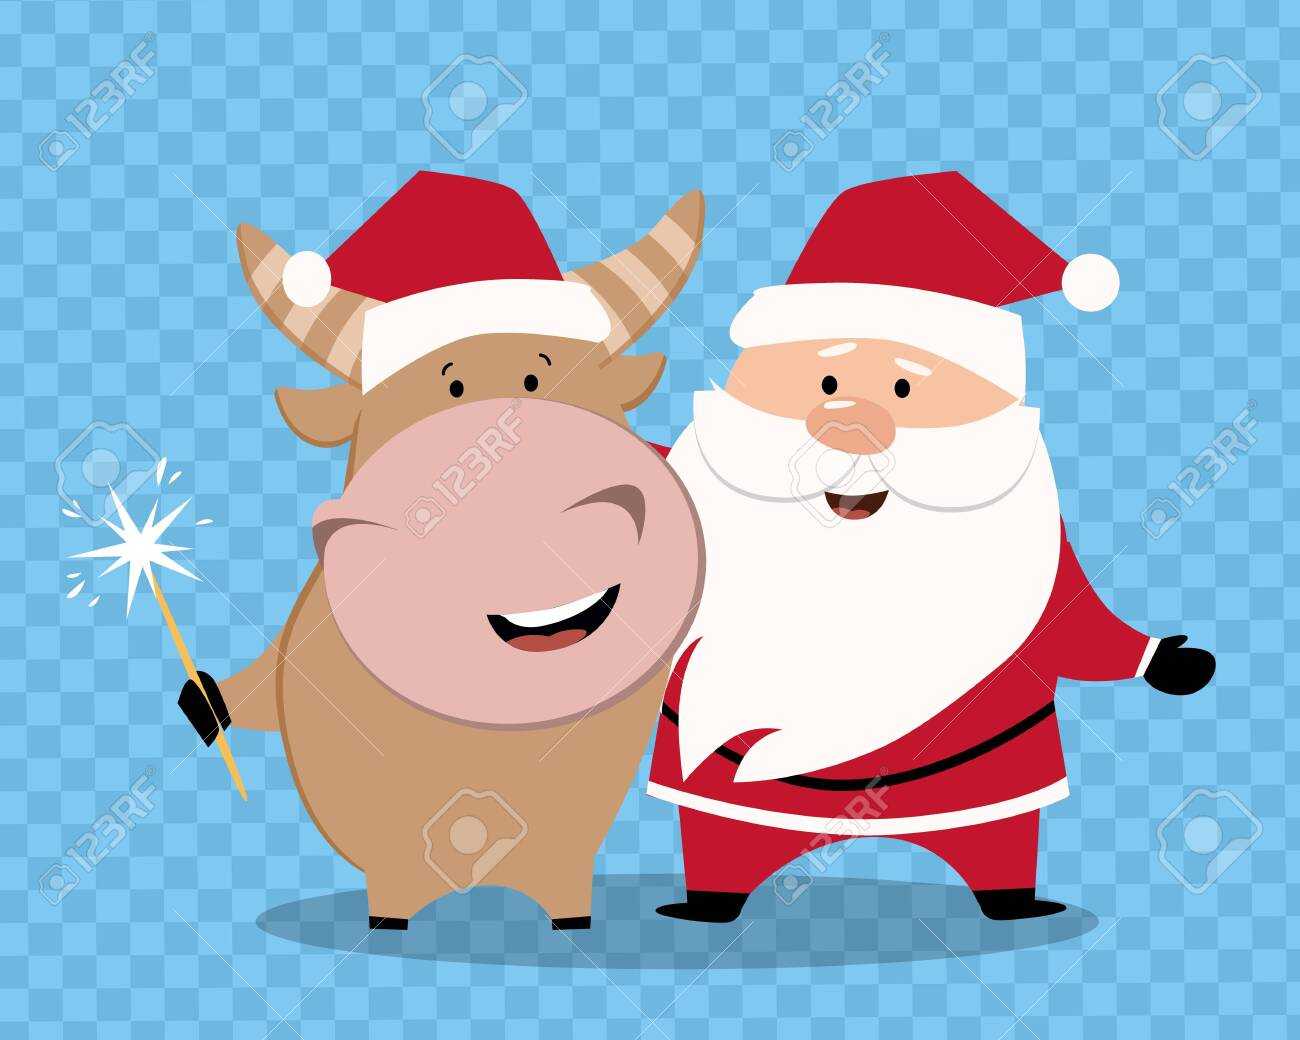 cartoon happy new year 2021 bull vector of cute ox santa merry royalty free cliparts vectors and stock illustration image 149263095 cartoon happy new year 2021 bull vector of cute ox santa merry